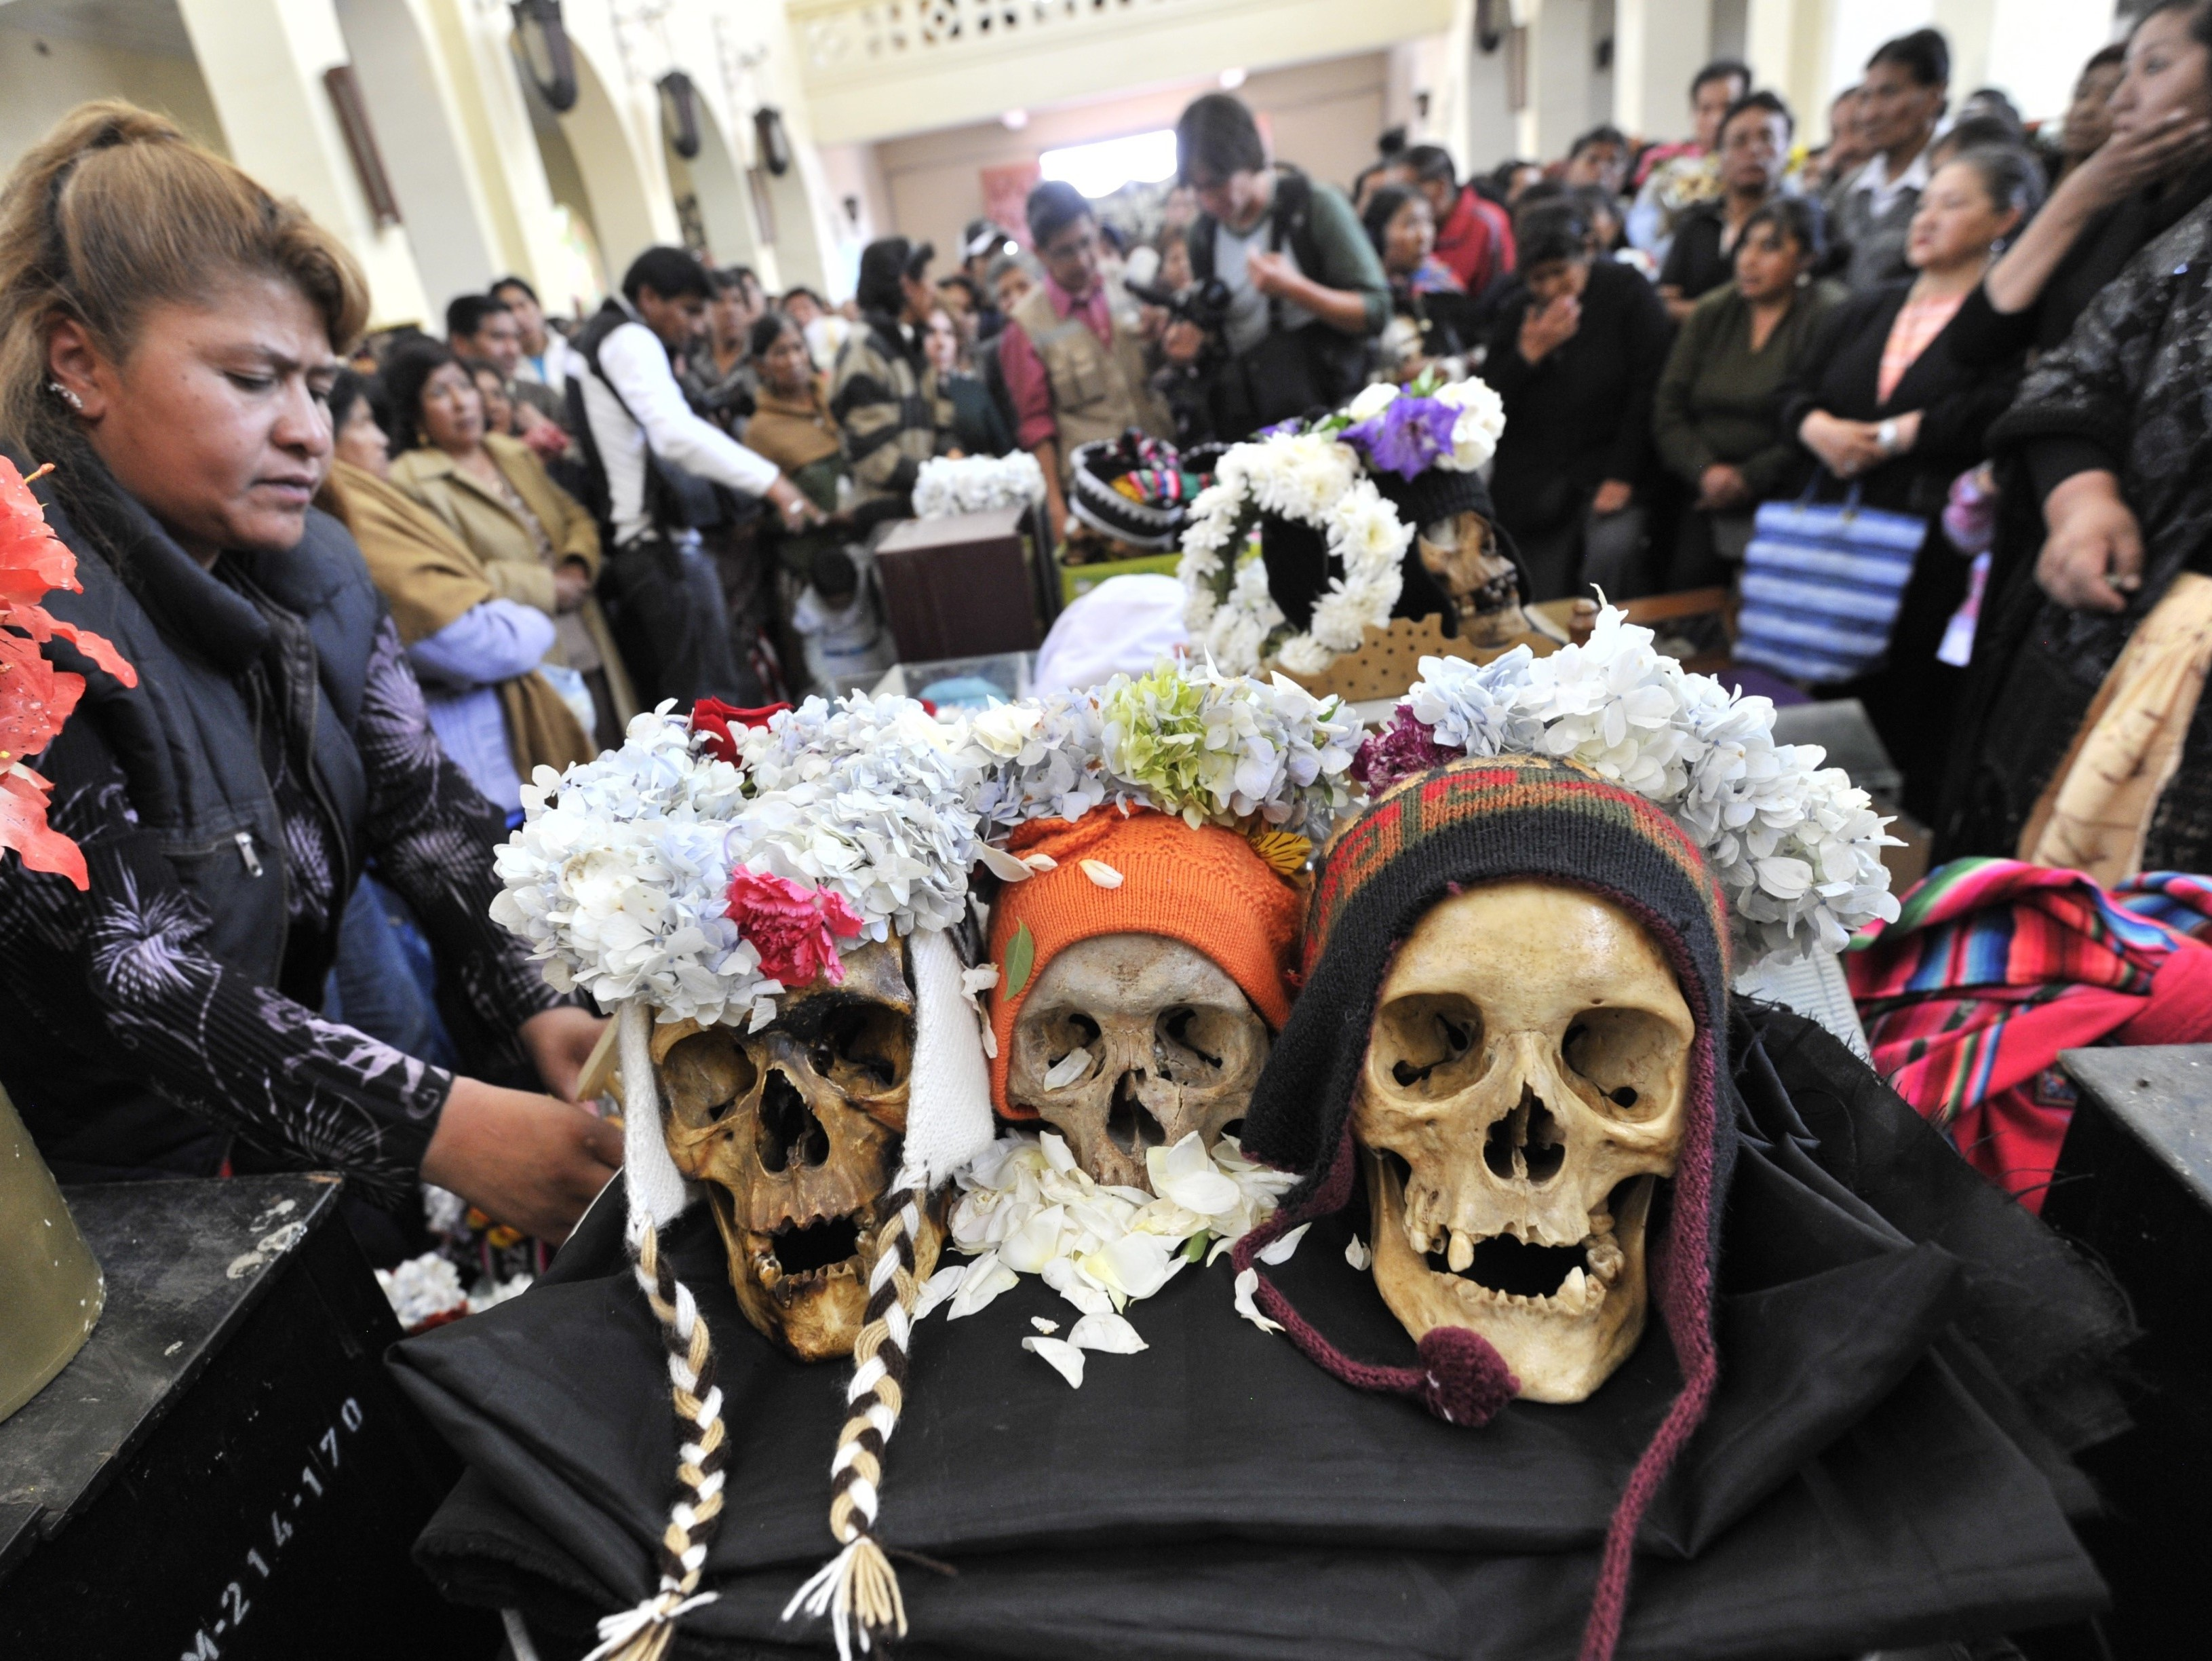 Bolivian Skull Ceremony Blends Ancient Rite With Catholicism